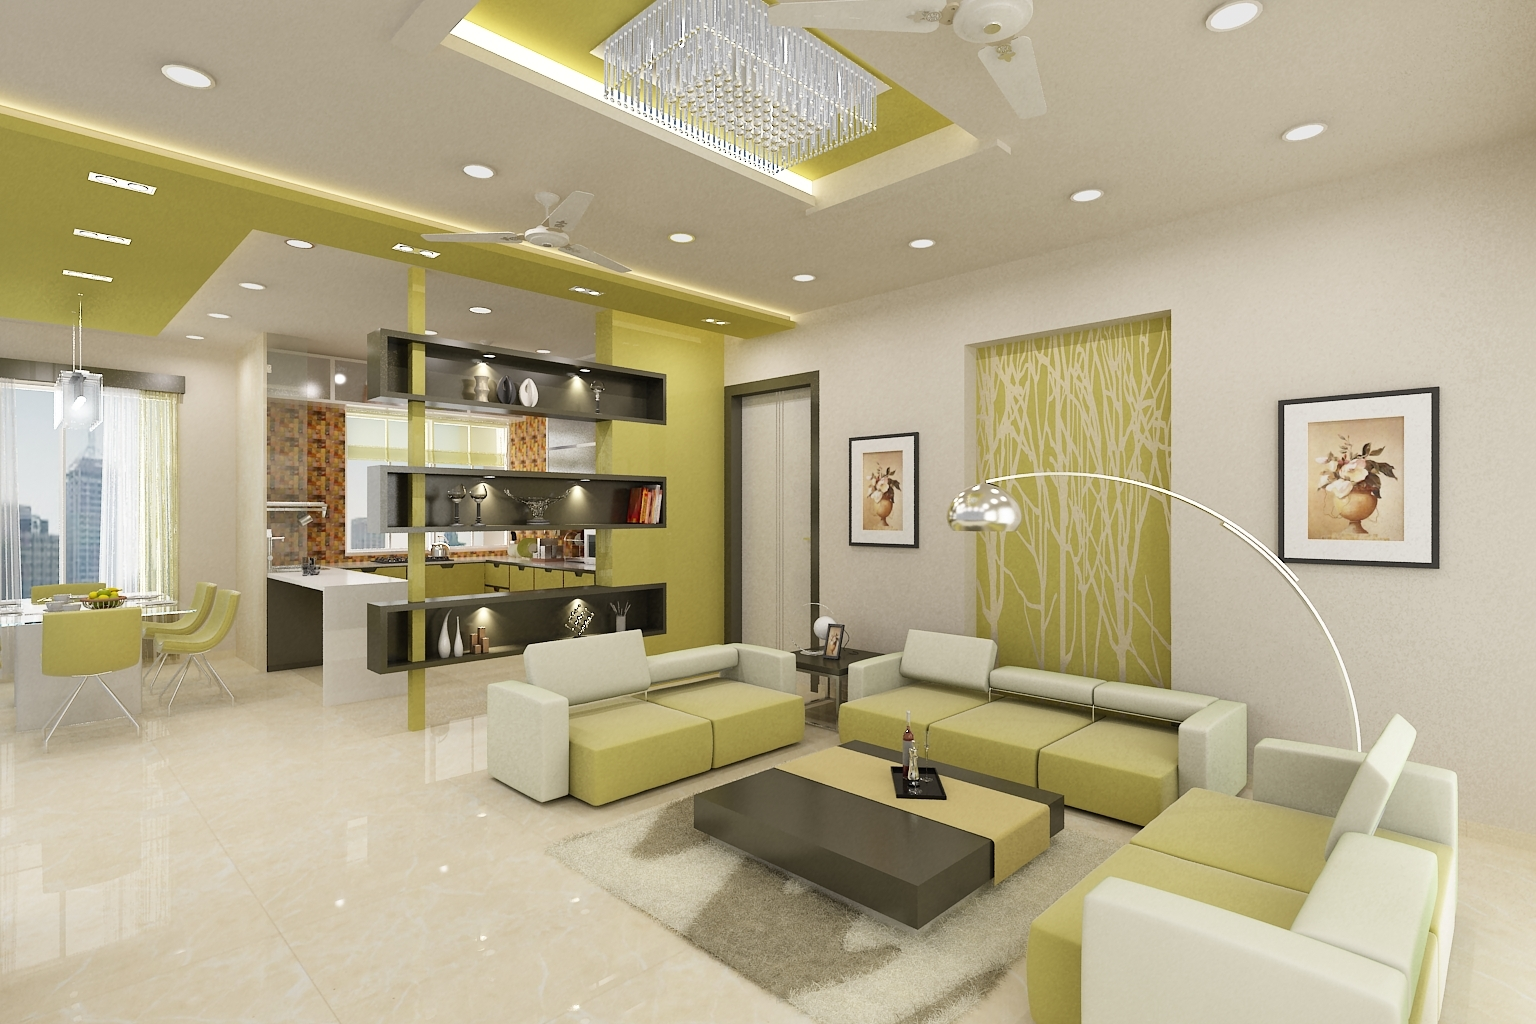 Design View In Satellite Ahmedabad 380015 Sulekha